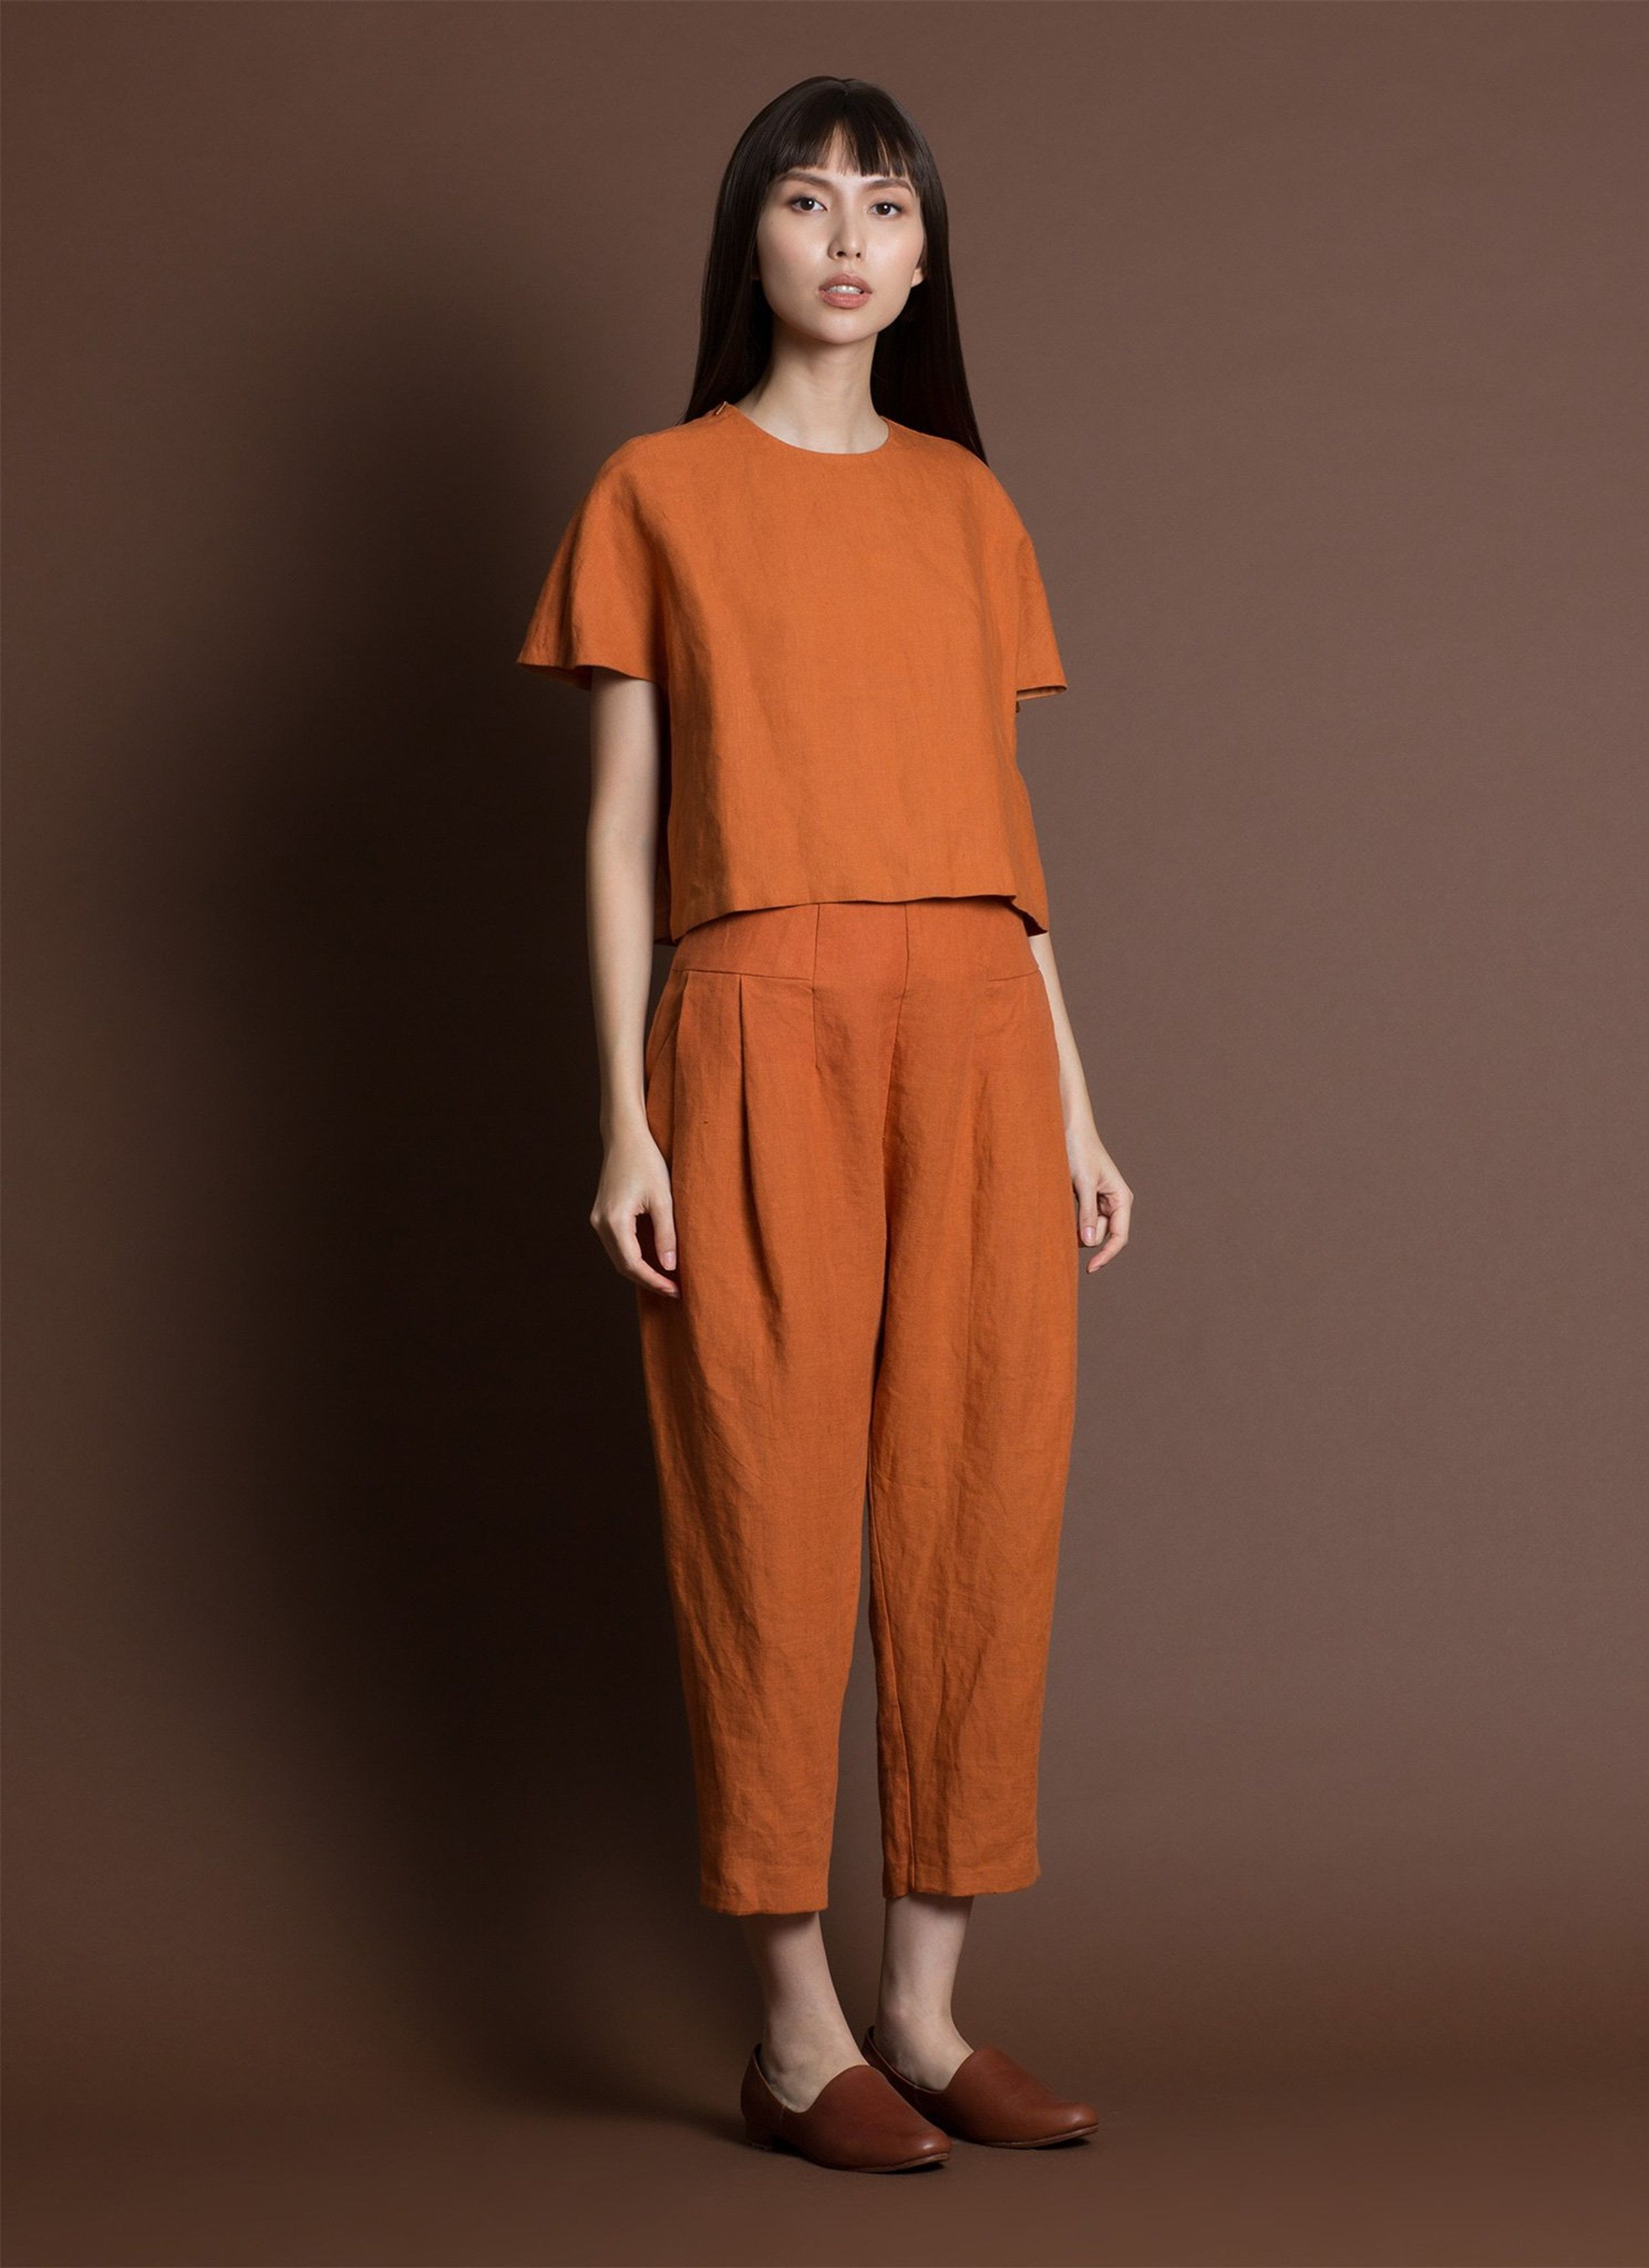 b4b1566e7b Ceiba Relaxed Pleated Cropped Pant w/Elastic - Red Sand in 2019 ...